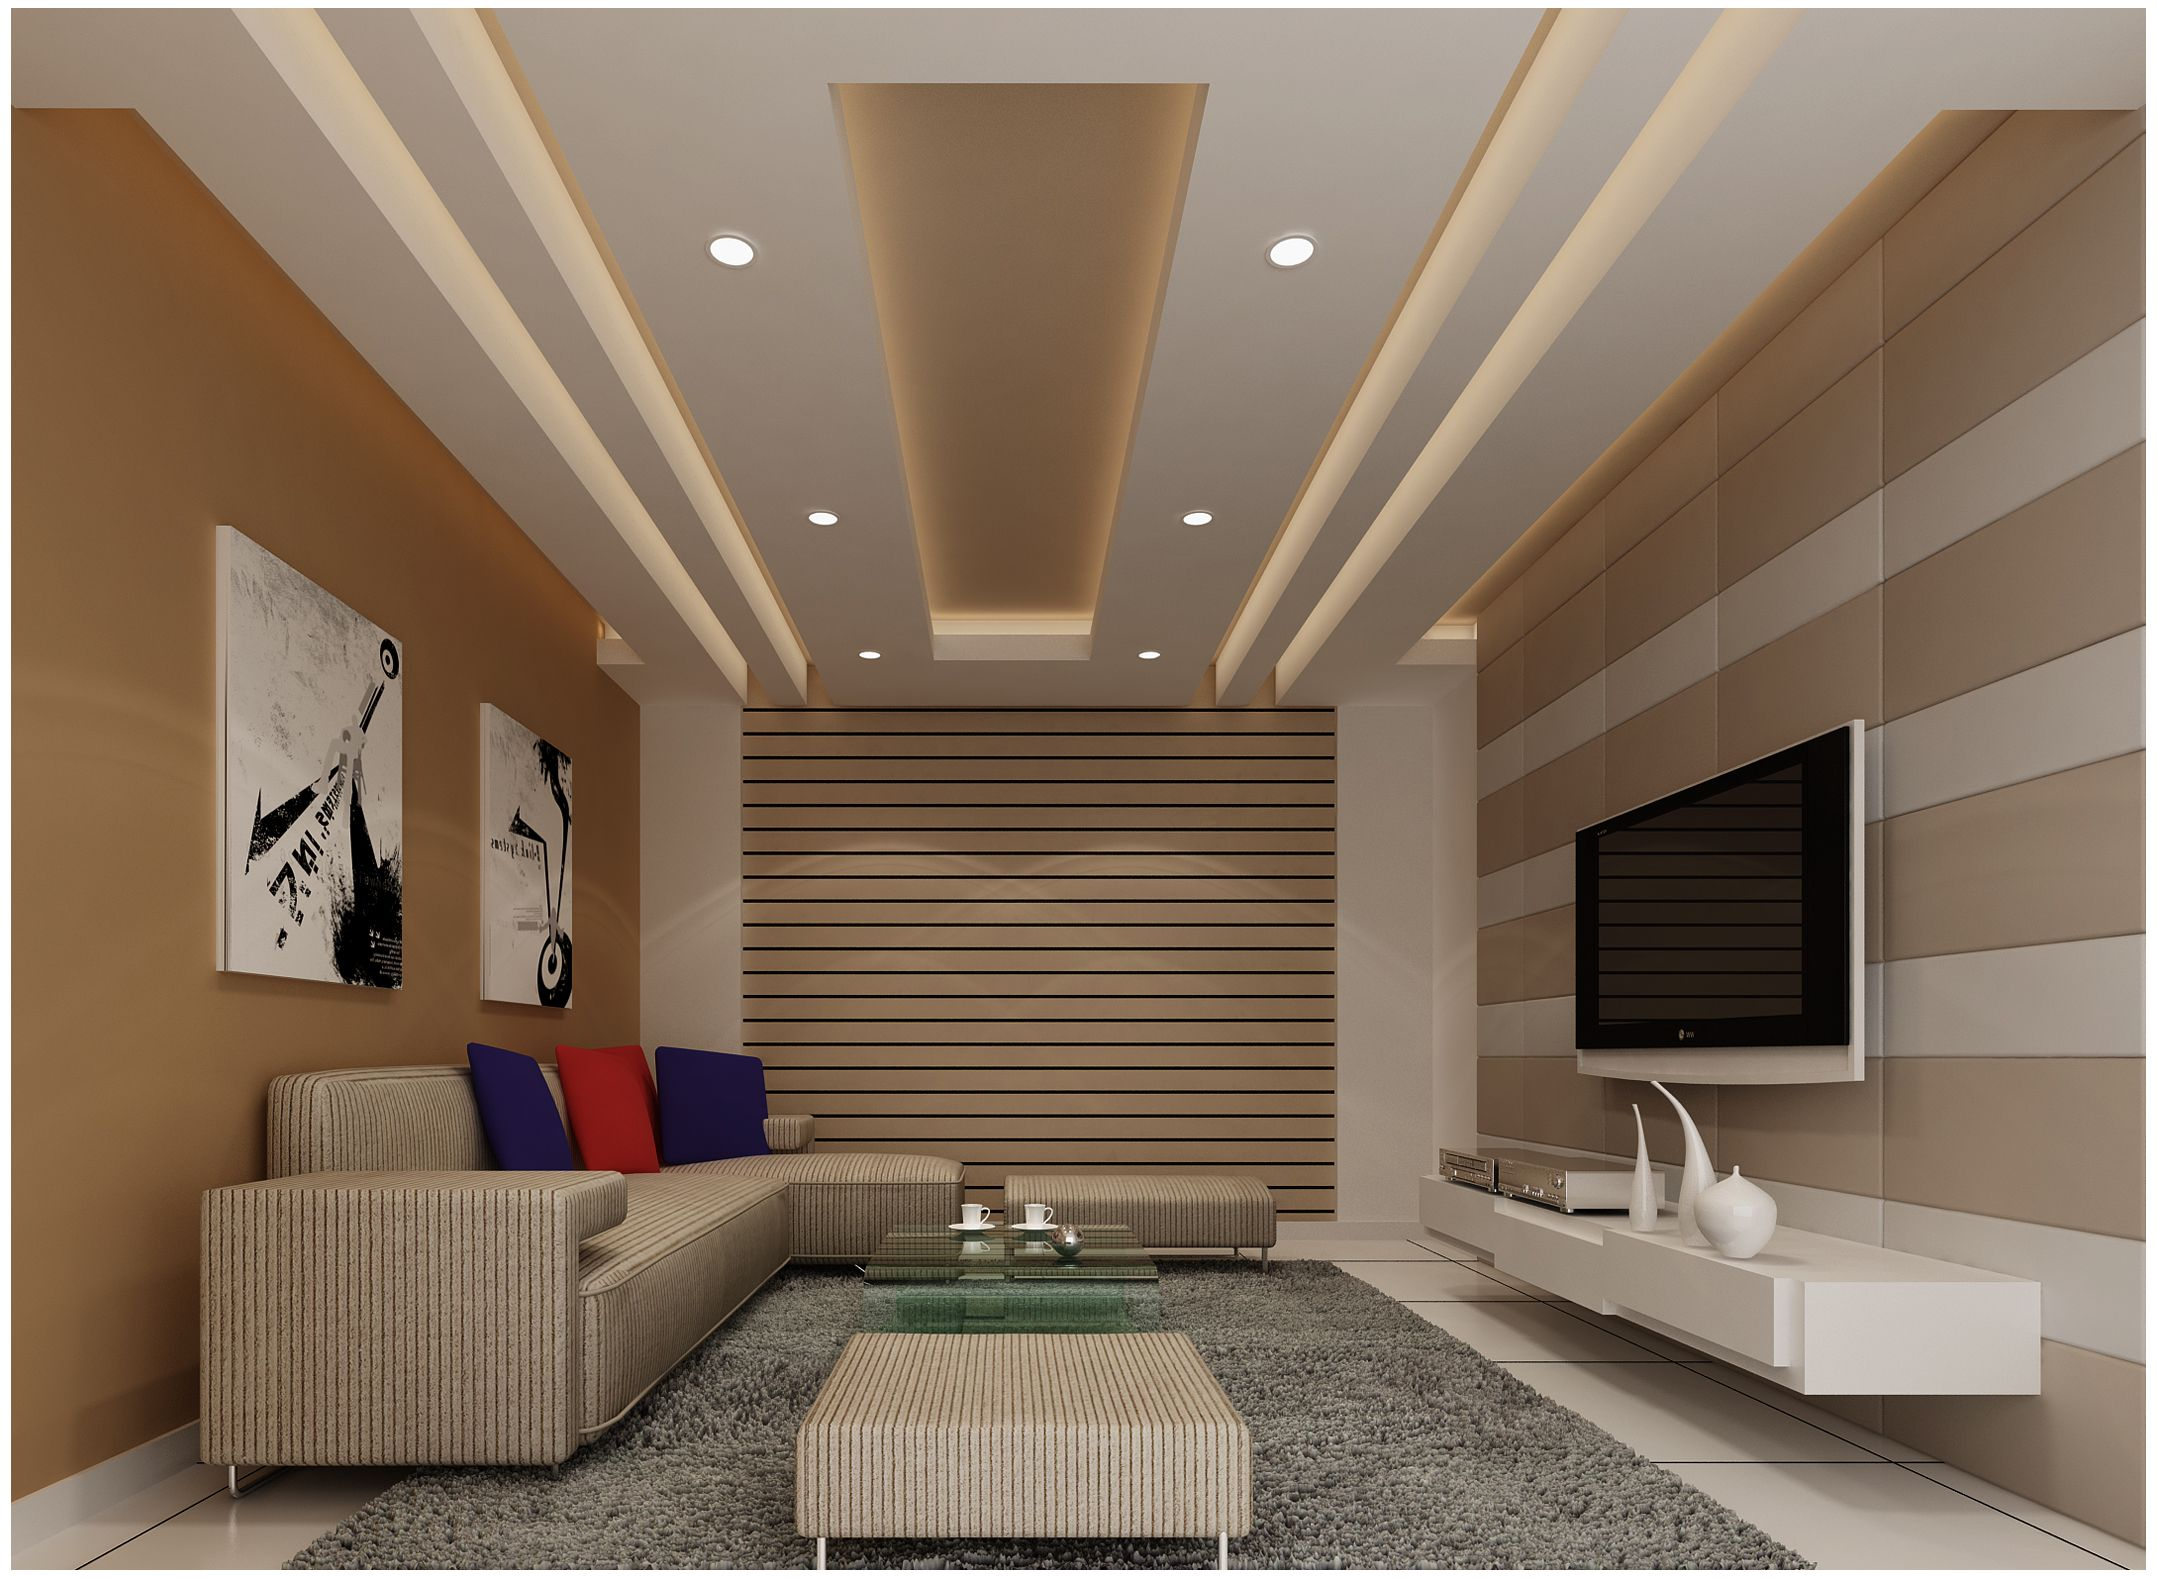 Pin by Jack on Ideas for the House  Pinterest  Ceilings Ceiling texture and Ceiling